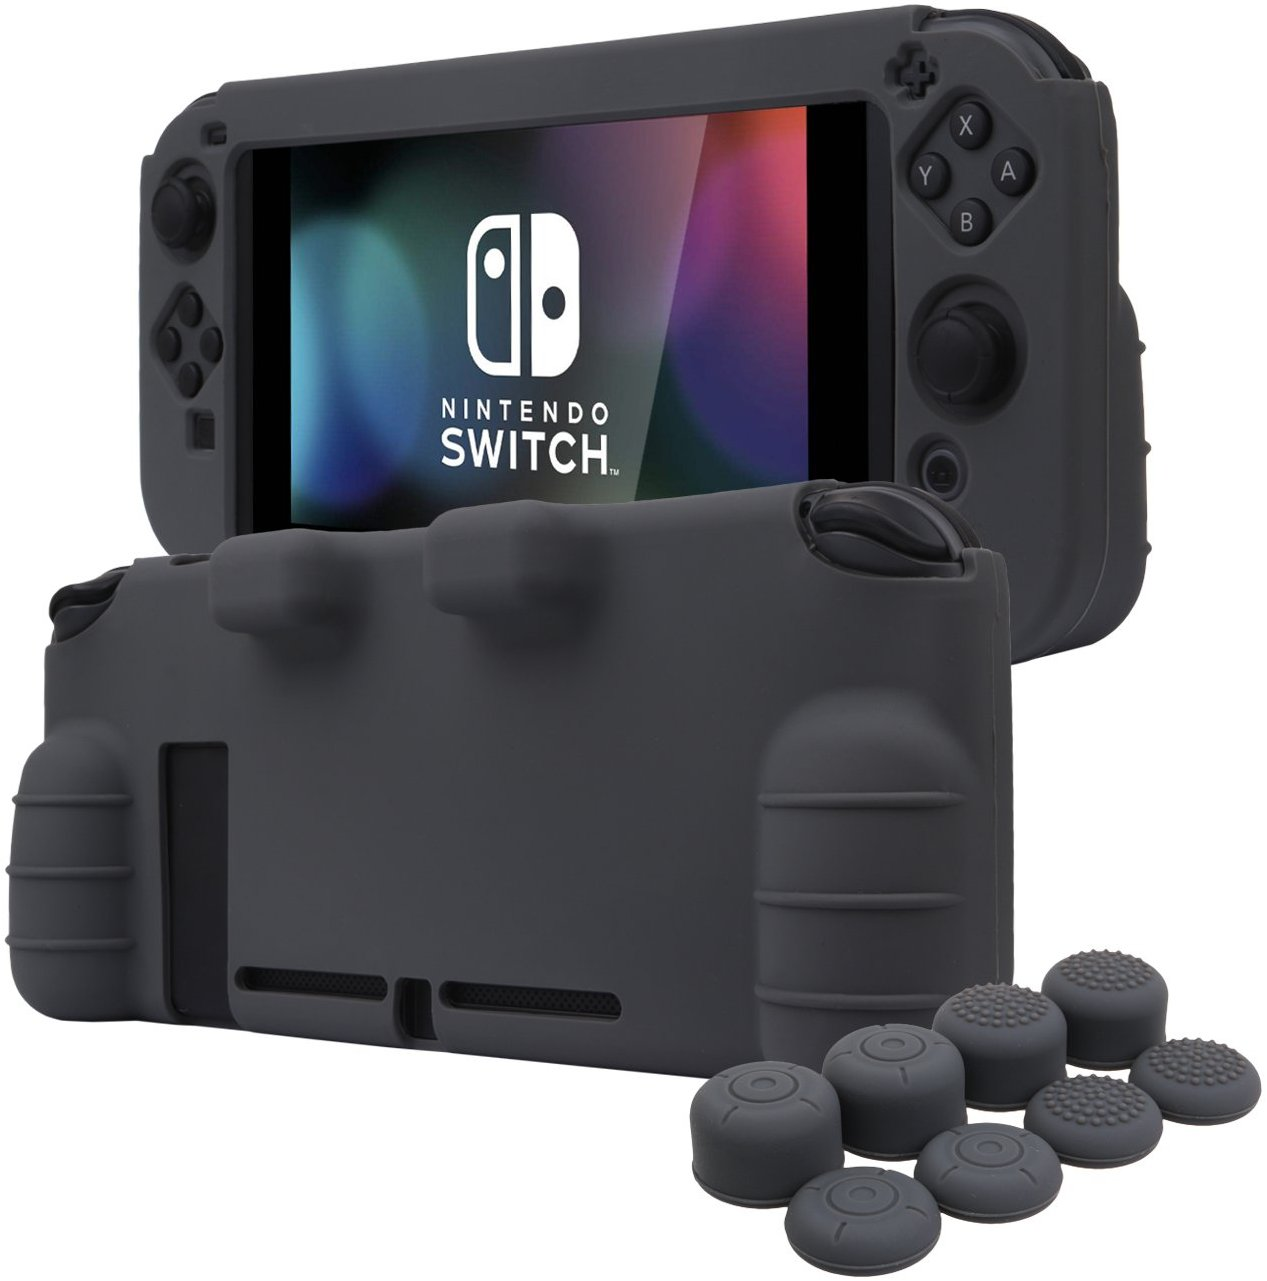 How to keep your Nintendo Switch Joy-Con controllers from